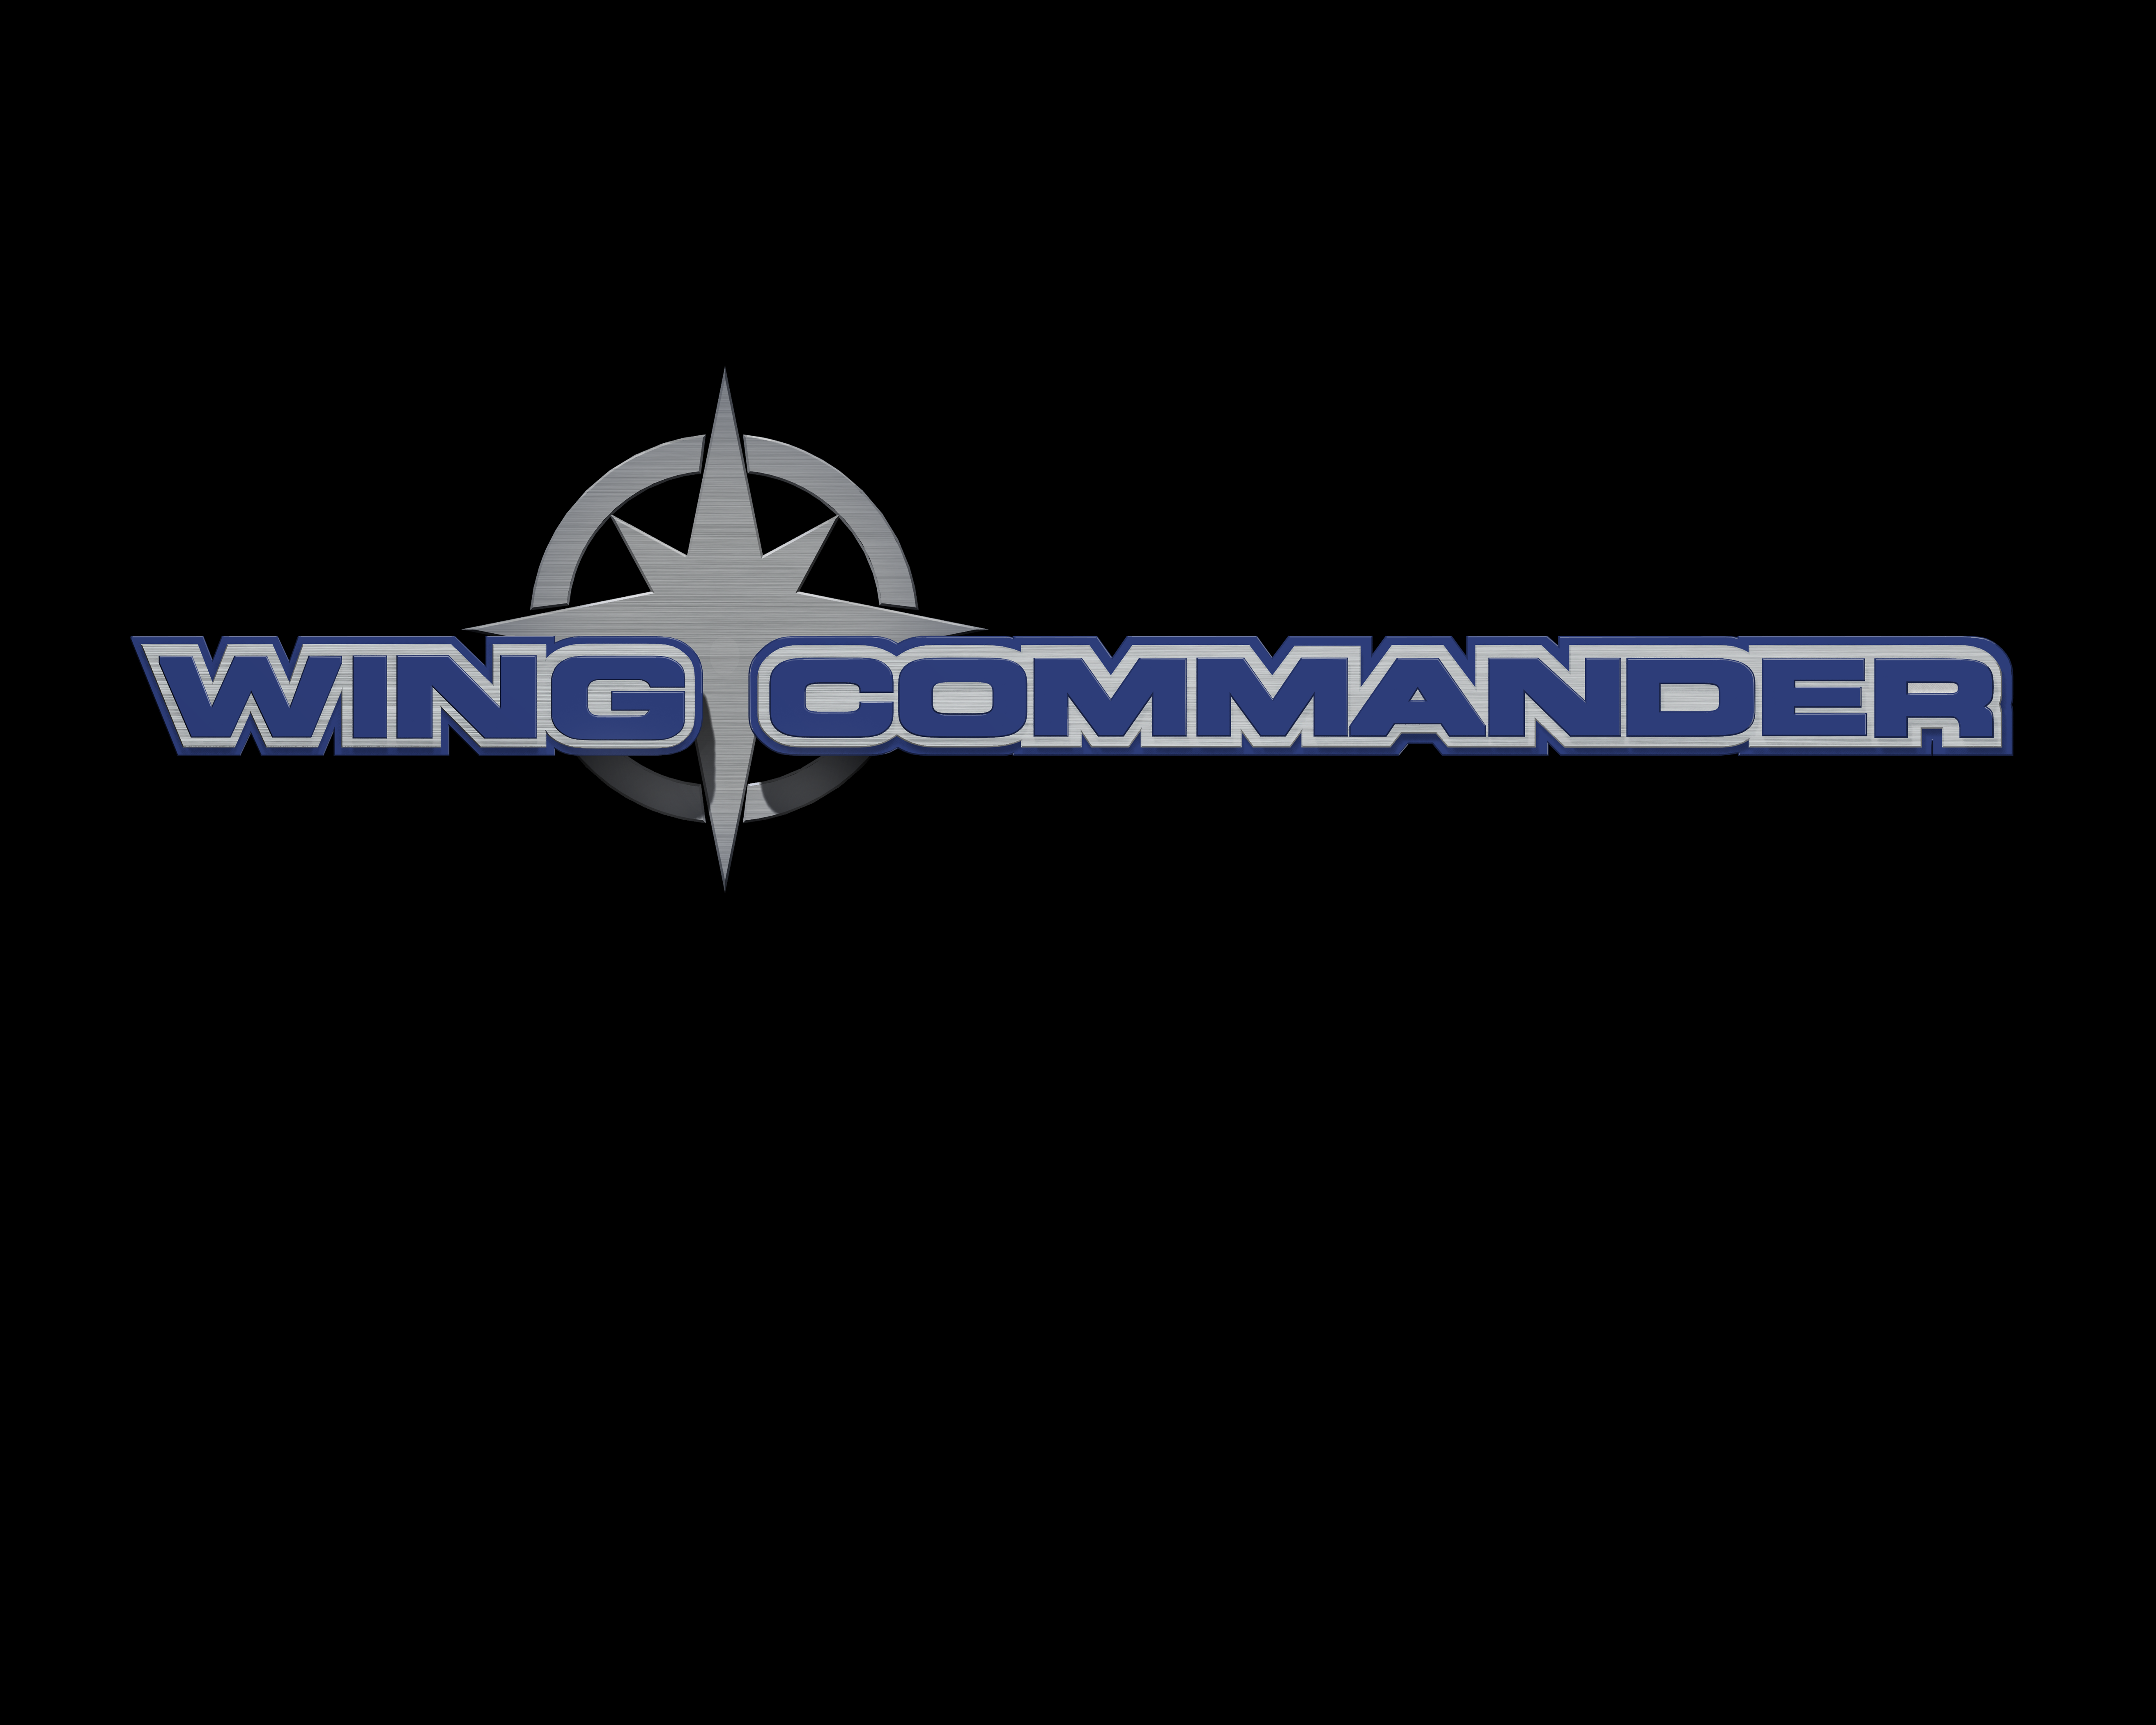 Making the games wing commander prophecy logos for Wing commander